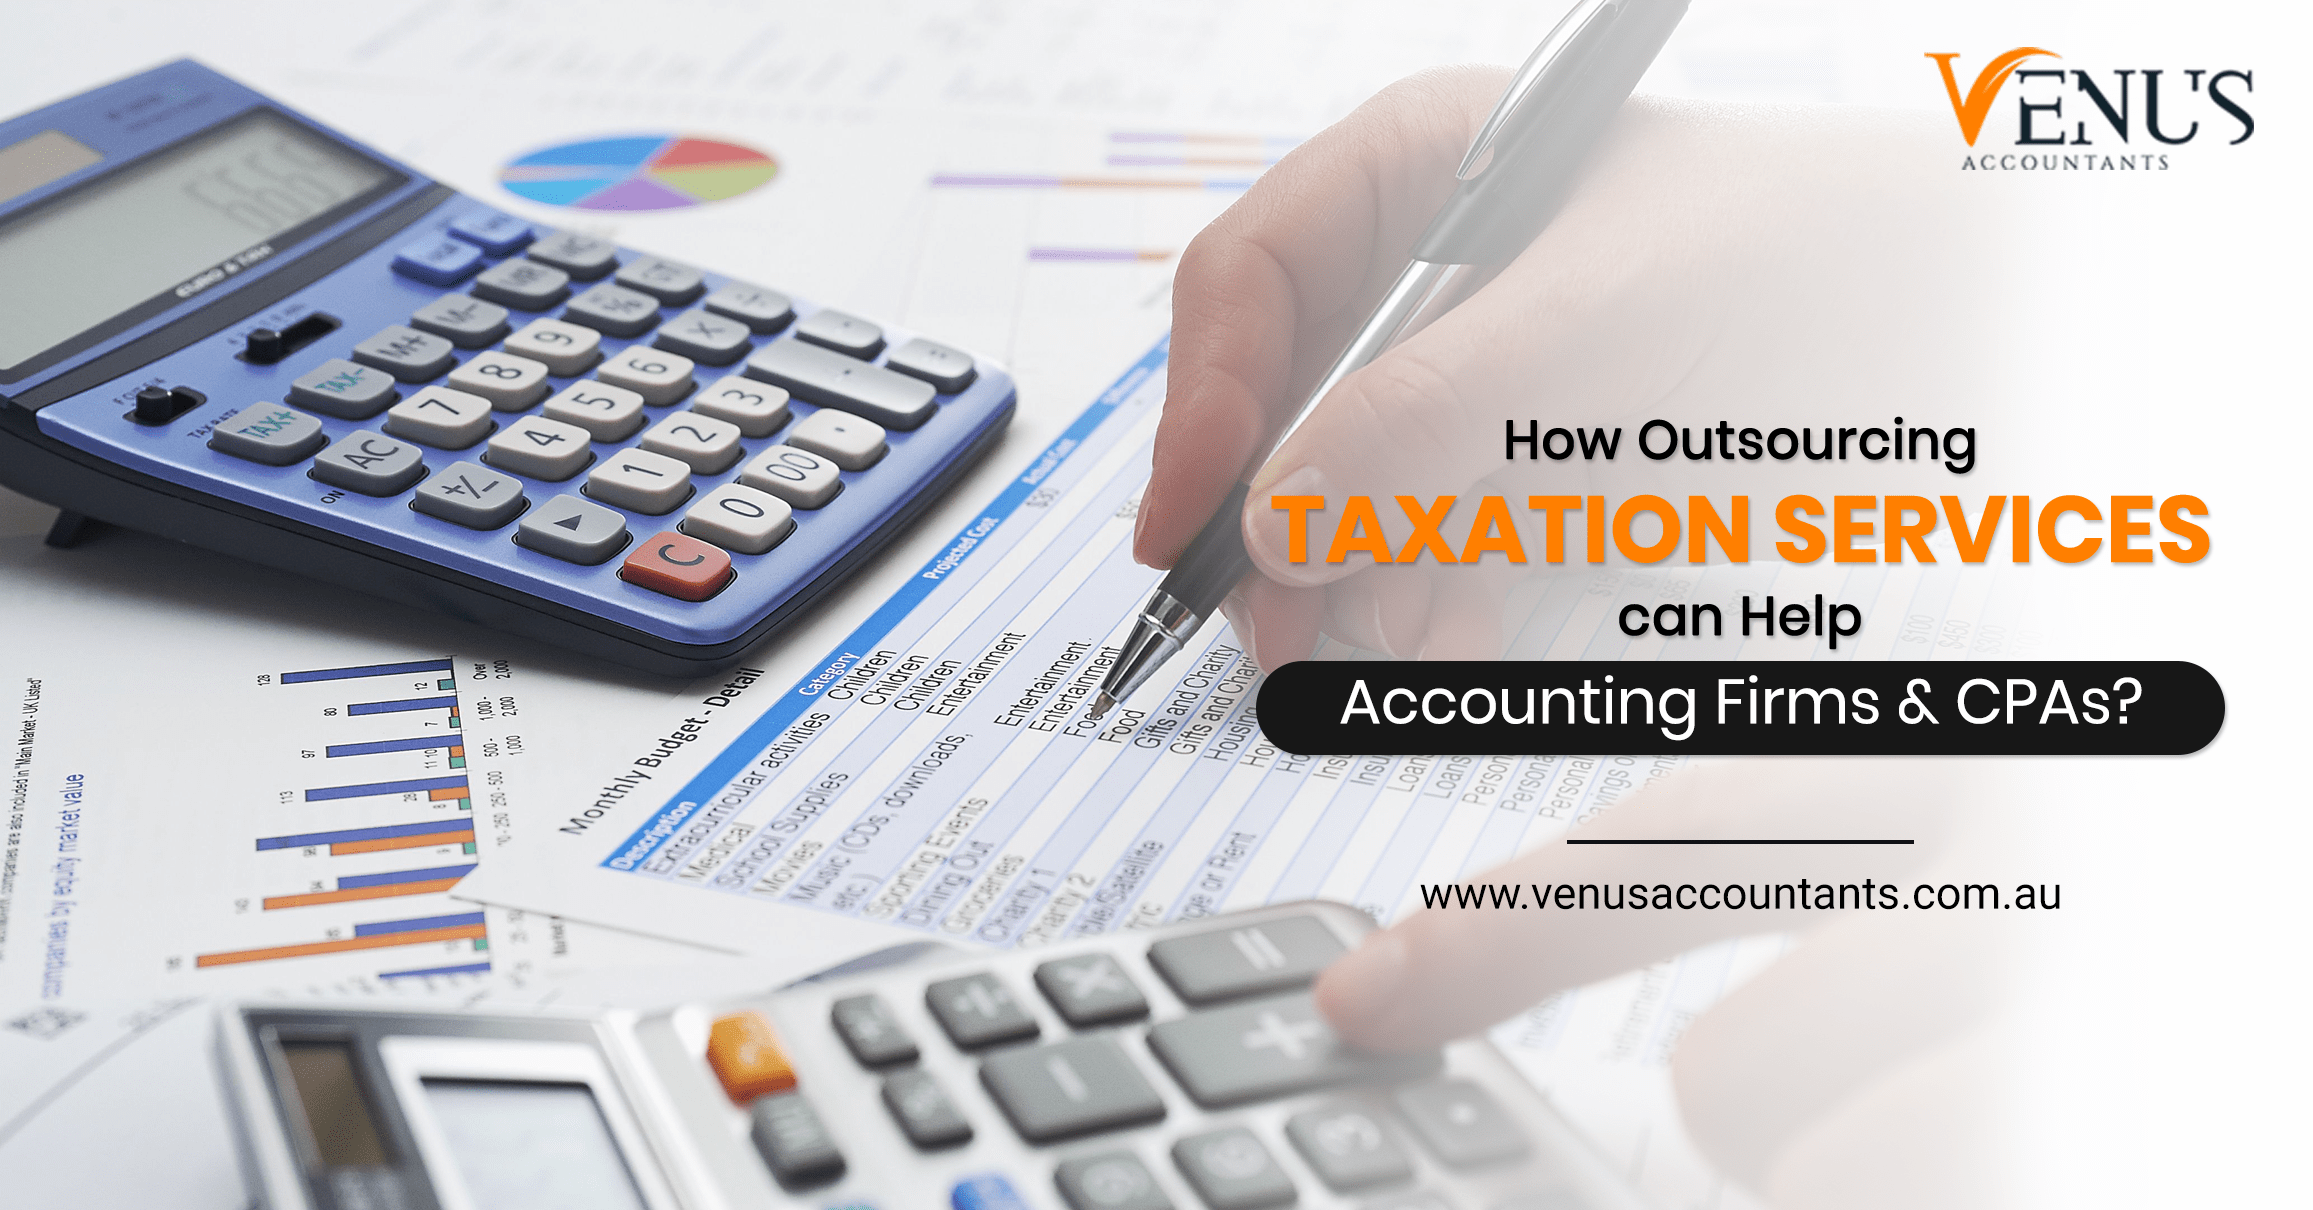 Outsourcing Taxation Services